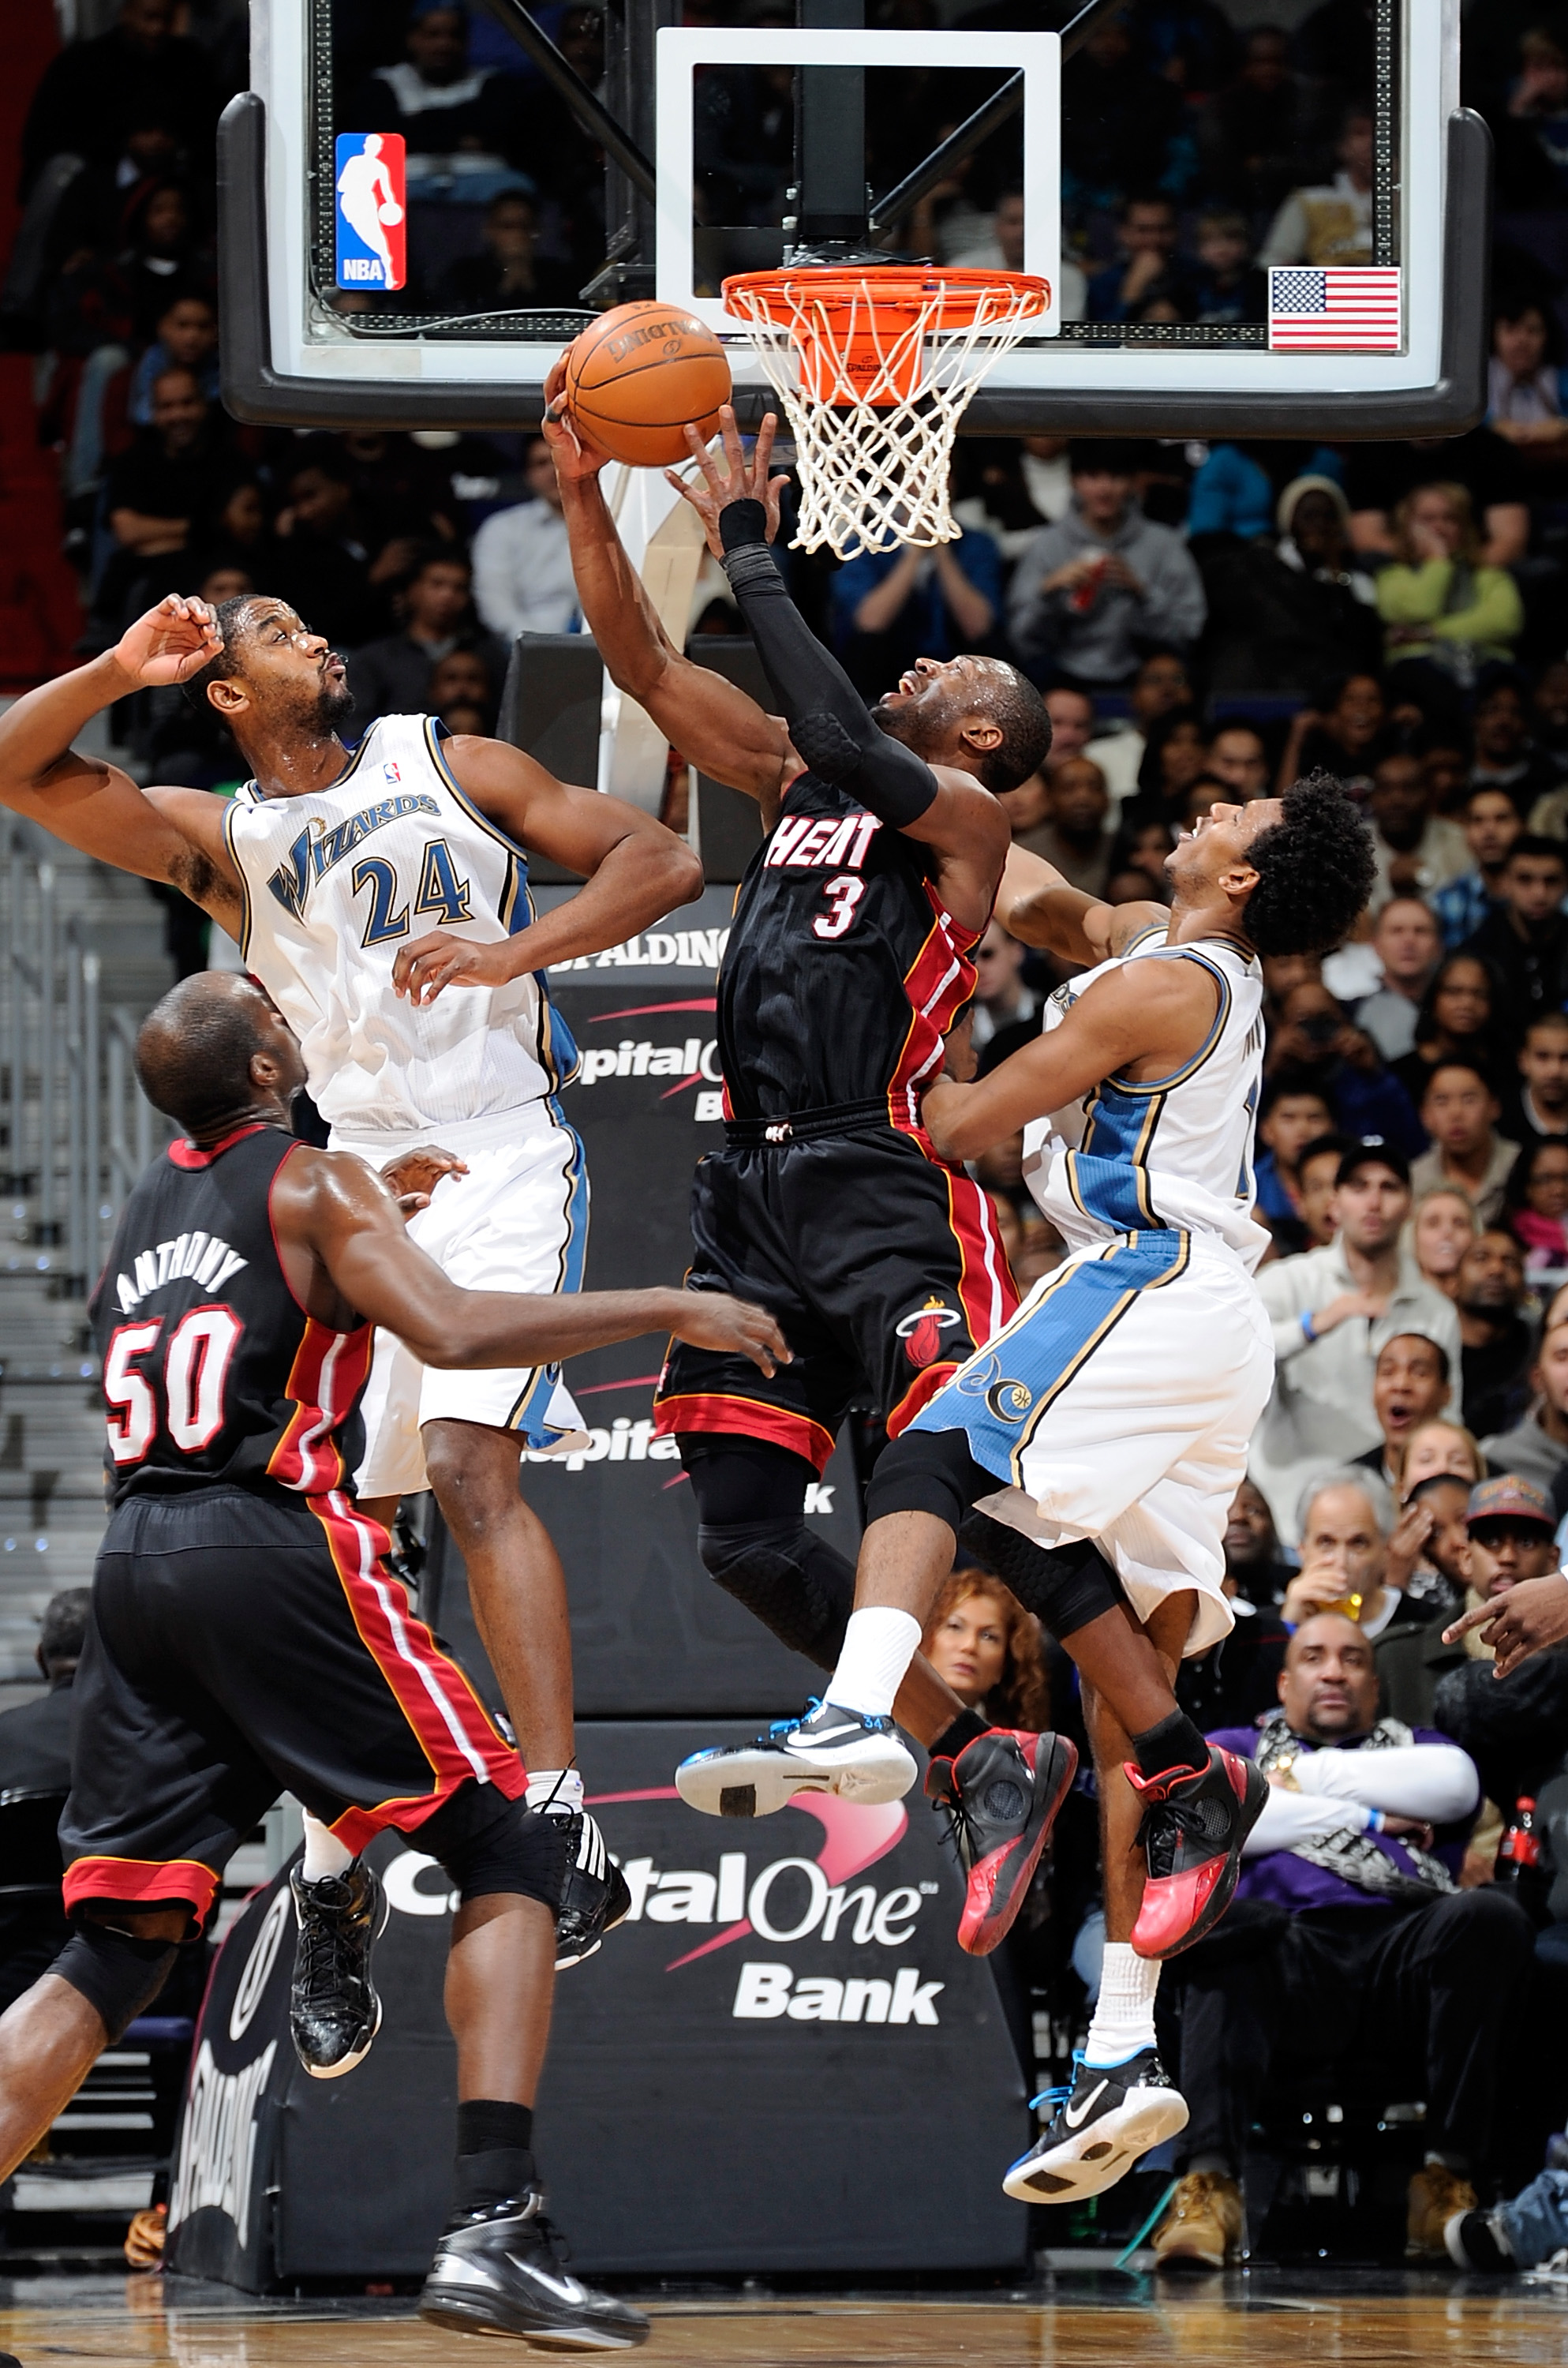 WASHINGTON - DECEMBER 18:  Dwyane Wade #3 of the Miami Heat drives to the hoop against Hilton Armstron #24 and Nick Young #1 of the Washington Wizards at the Verizon Center on December 18, 2010 in Washington, DC.  NOTE TO USER: User expressly acknowledges